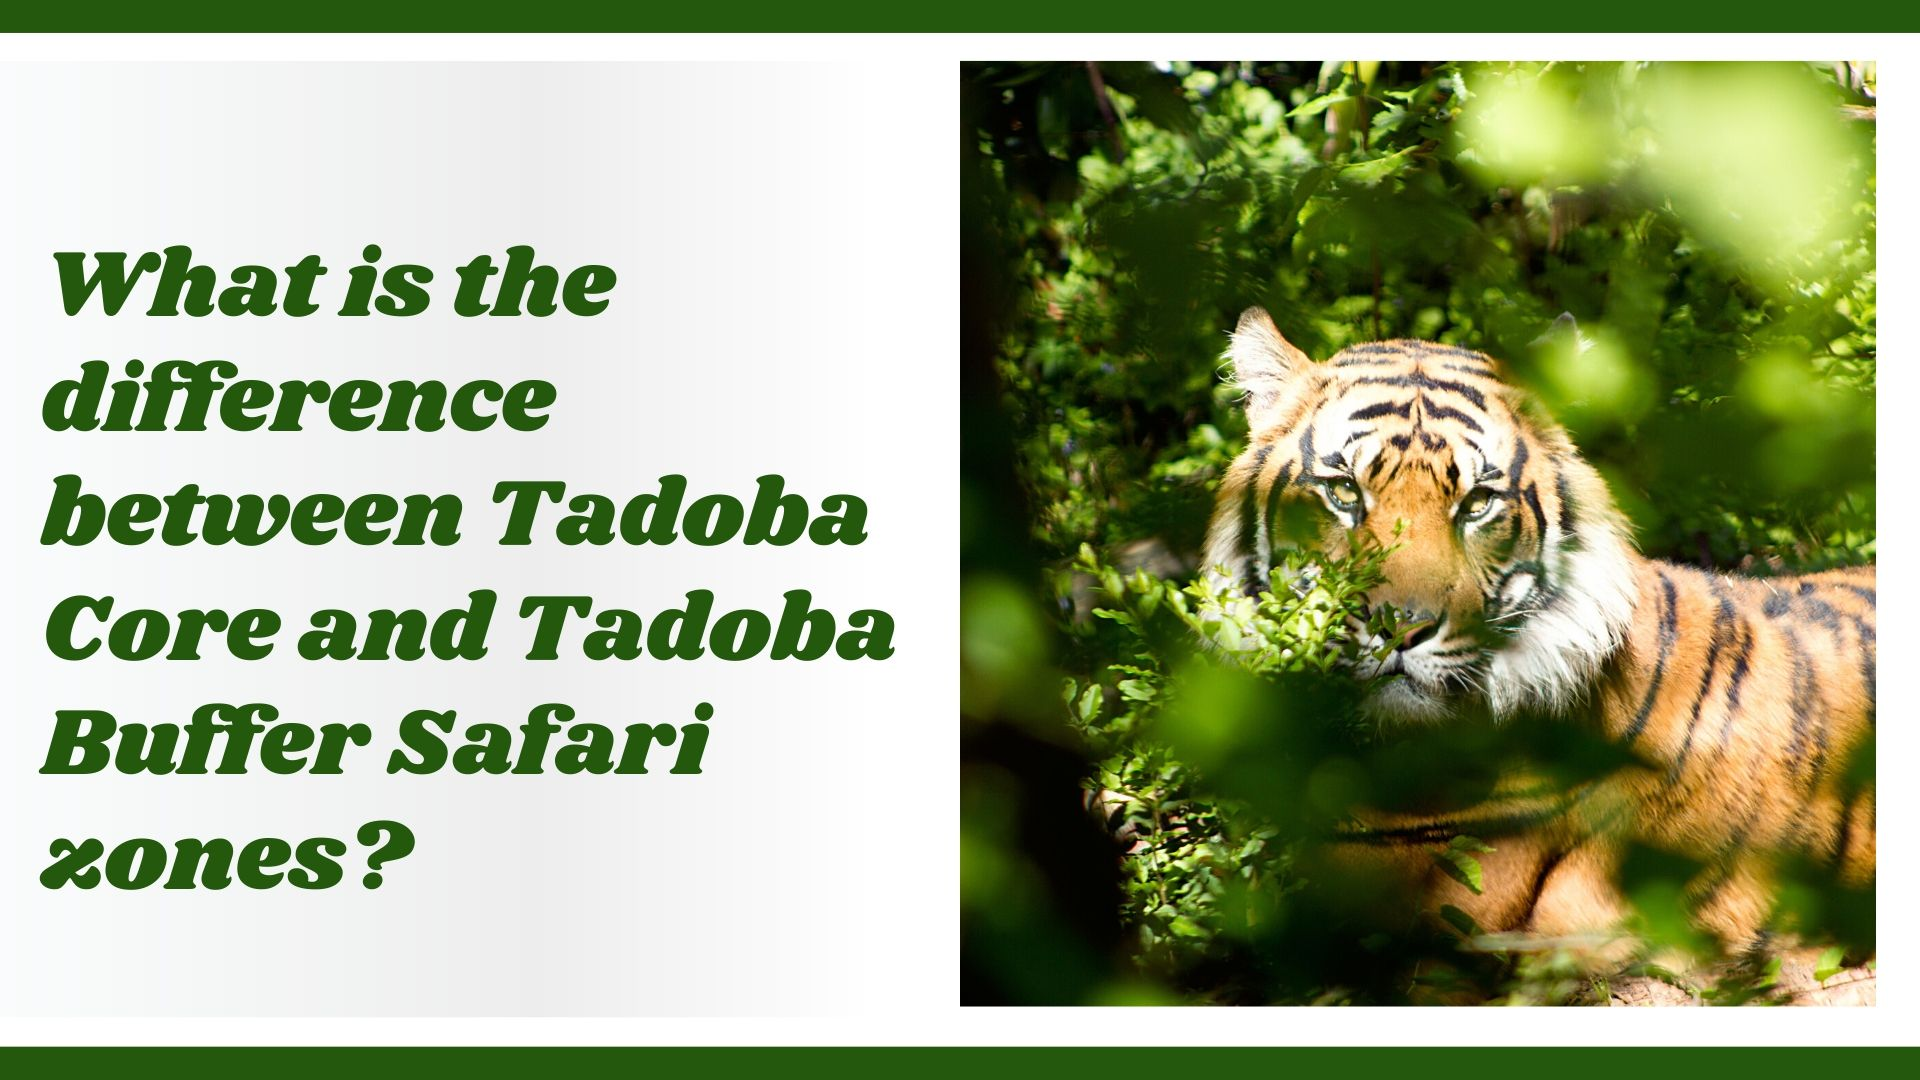 Tadoba budder and core zone